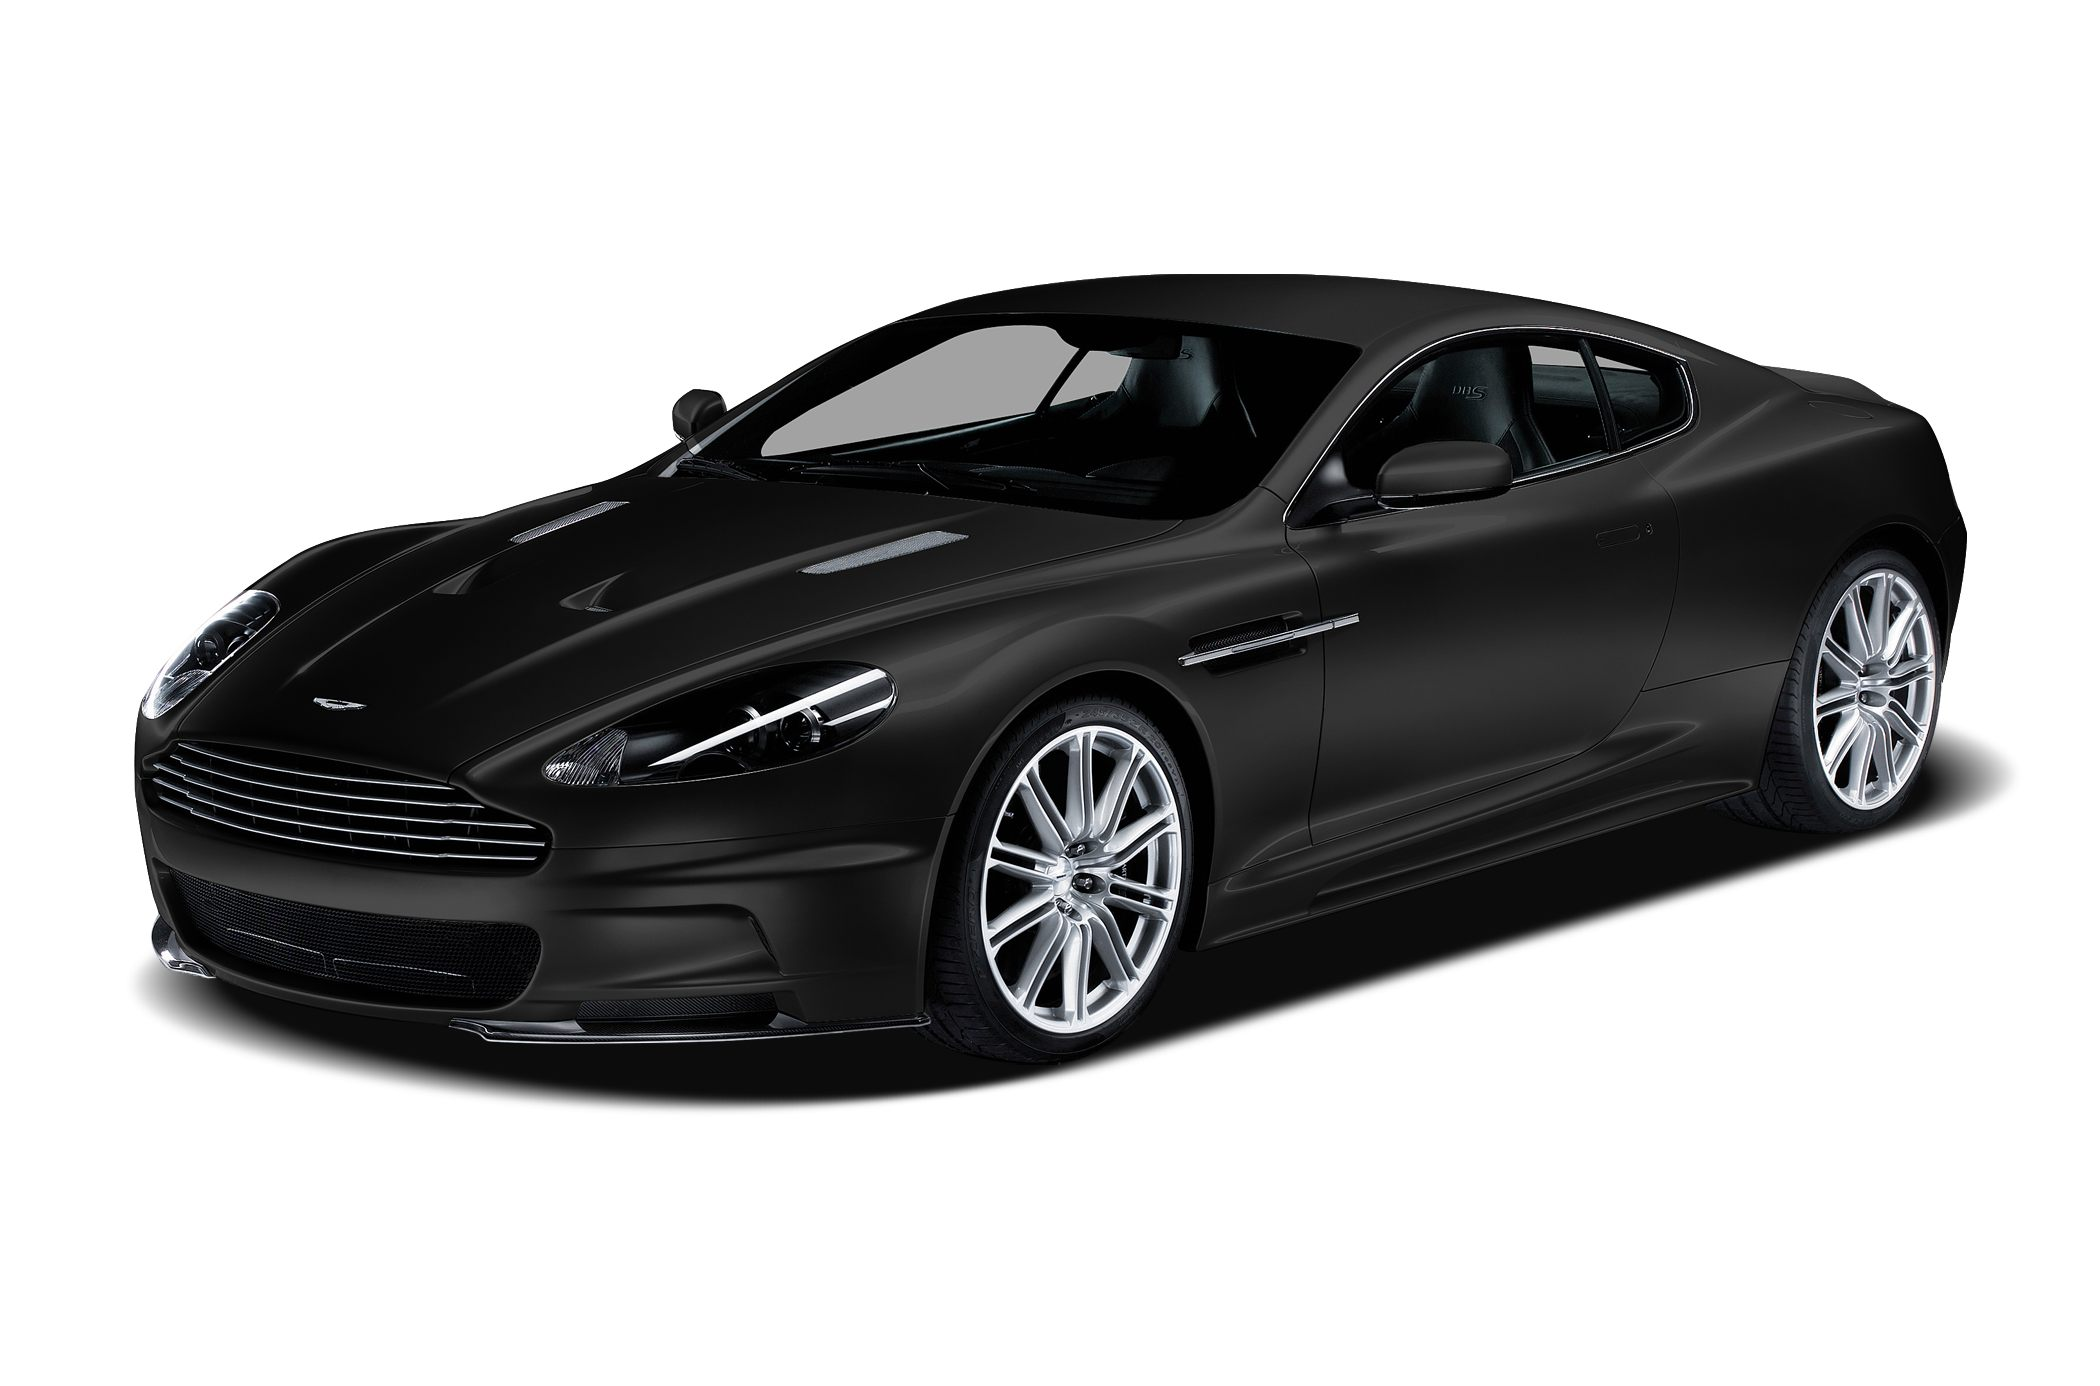 2009 Aston Martin Dbs Base 2dr Coupe Pricing And Options